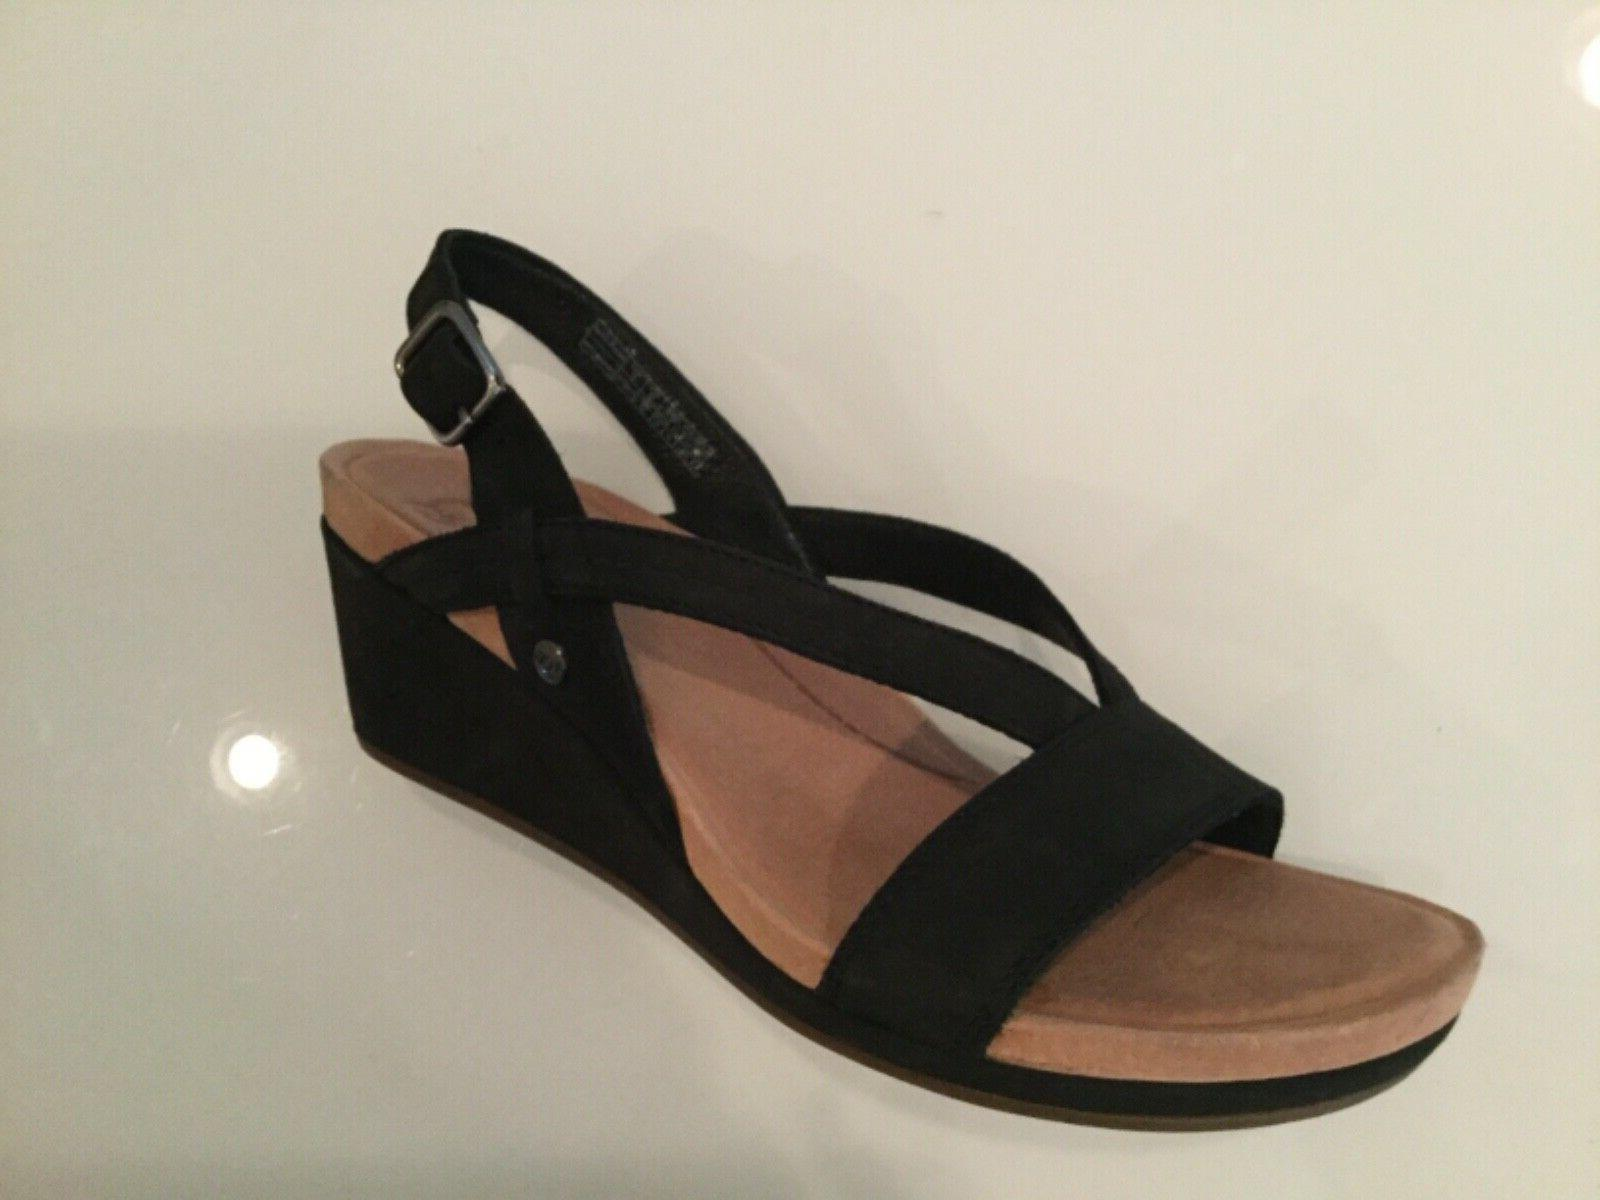 womens wedge sandals black suede leather new